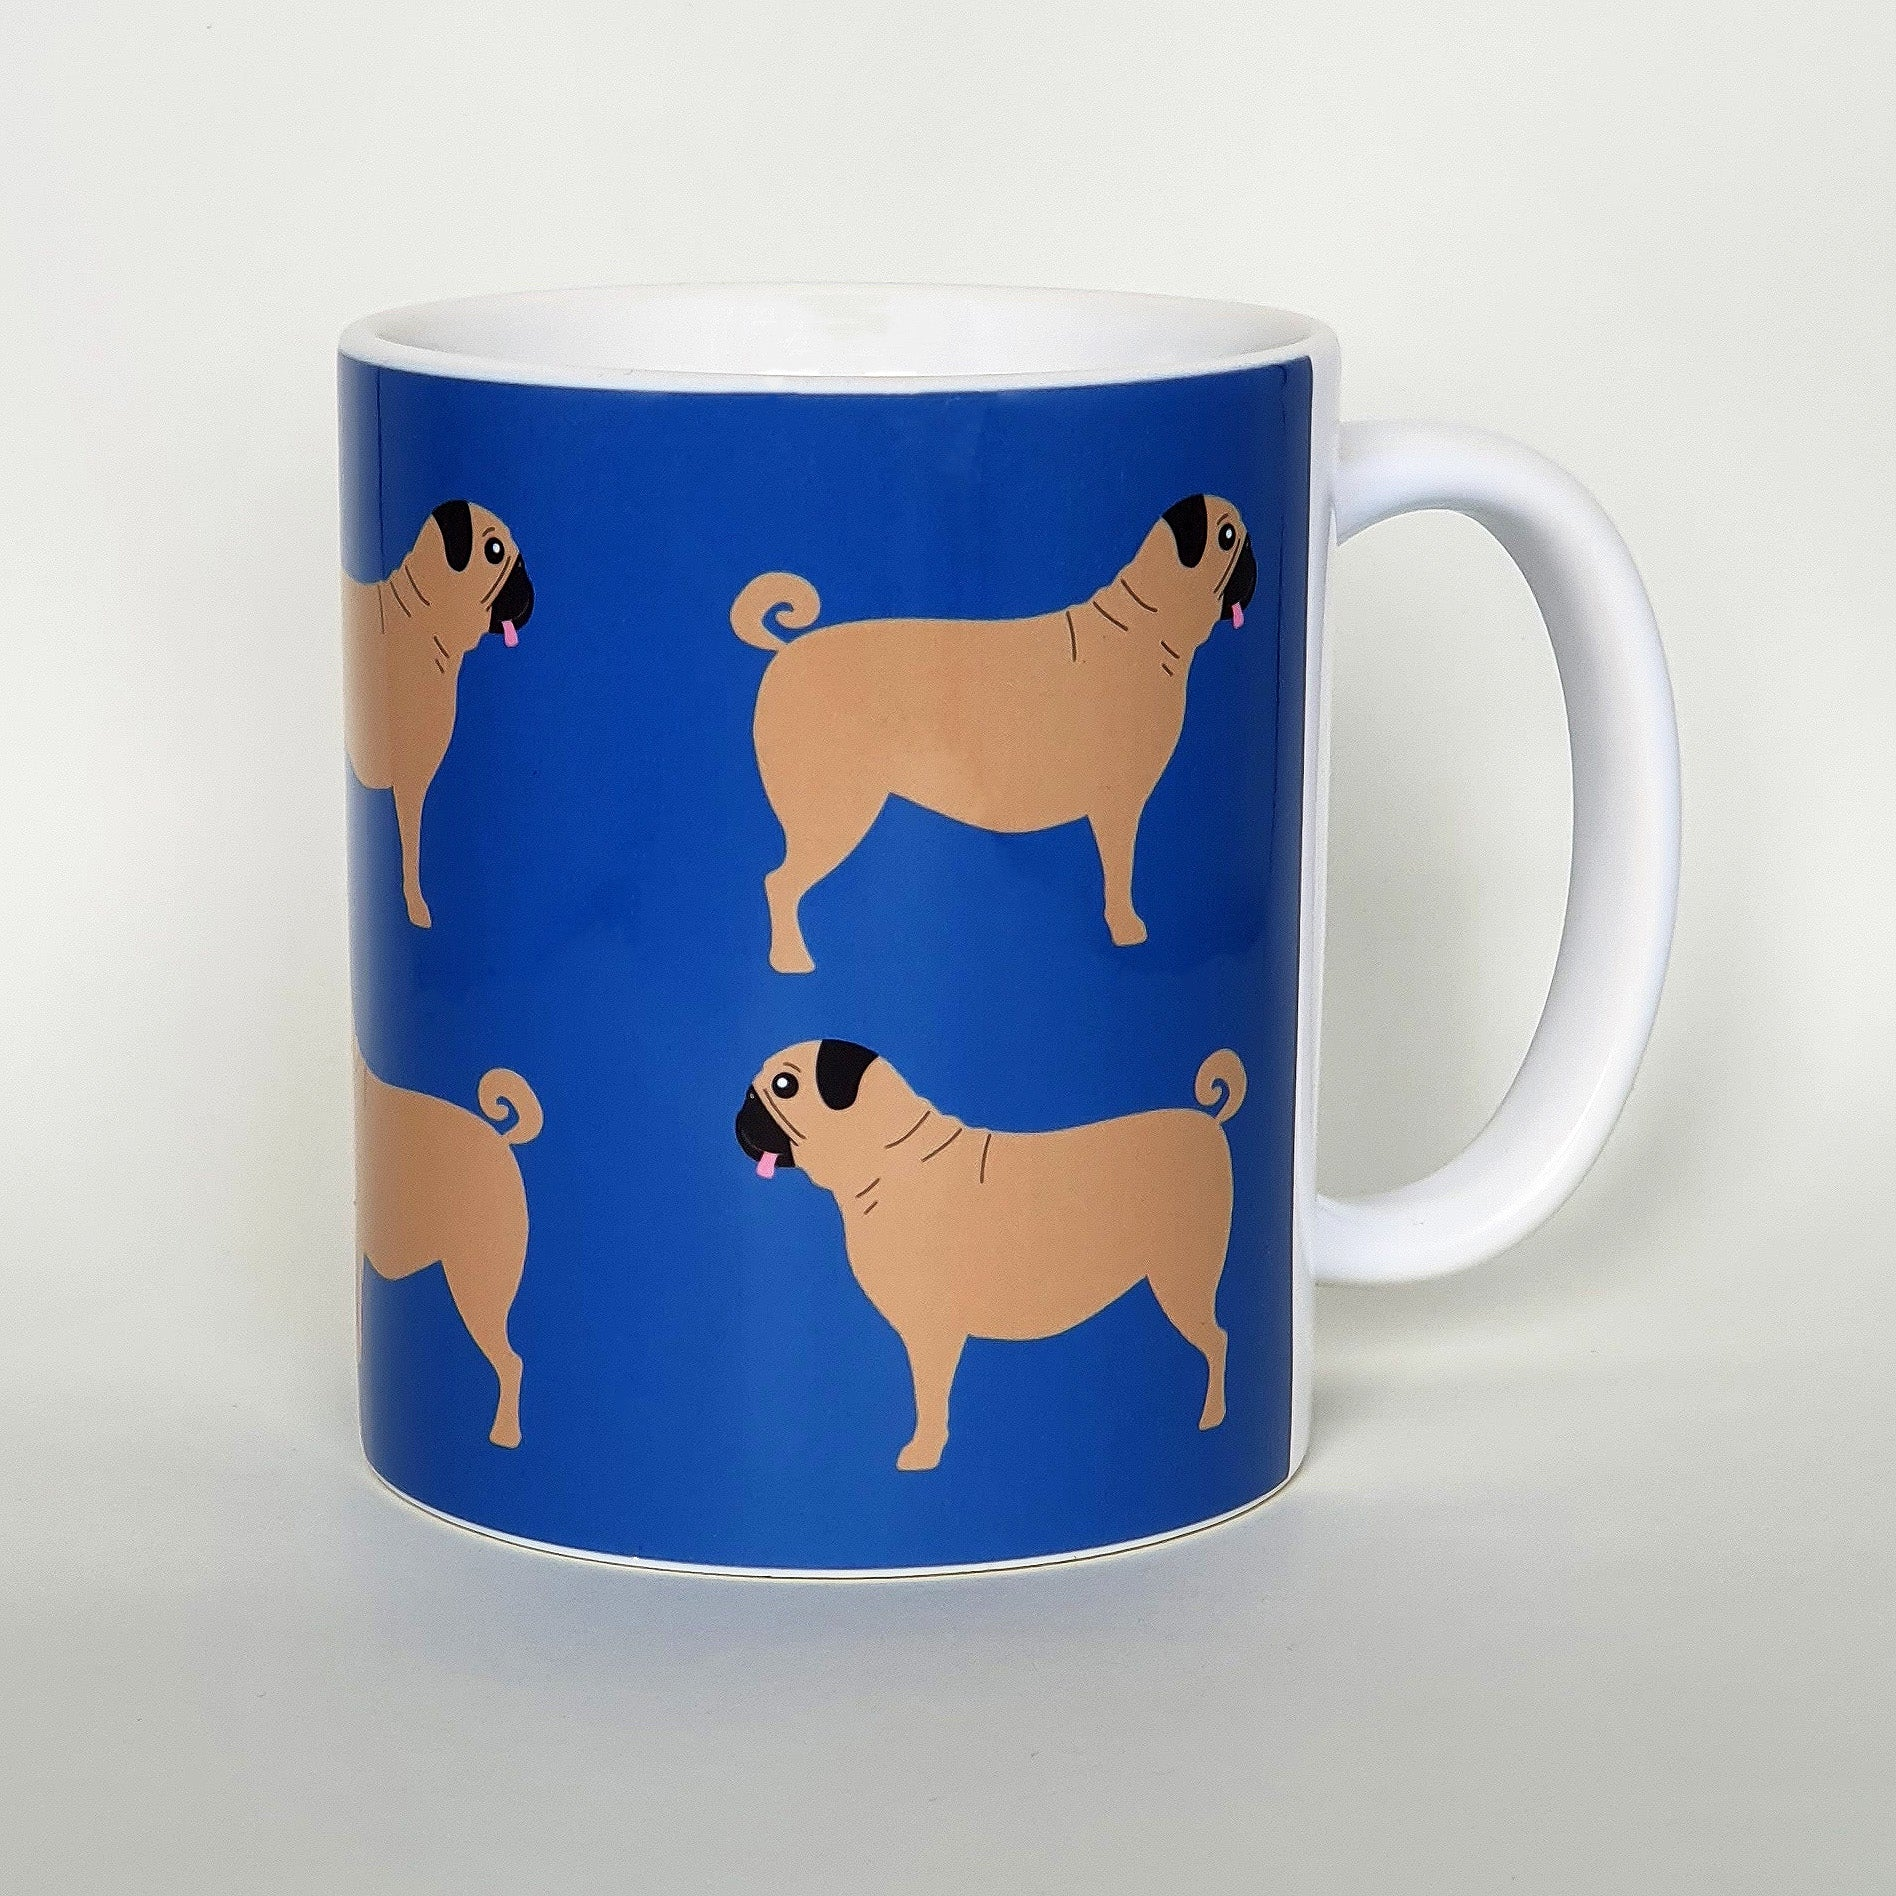 Pug earthenware mug